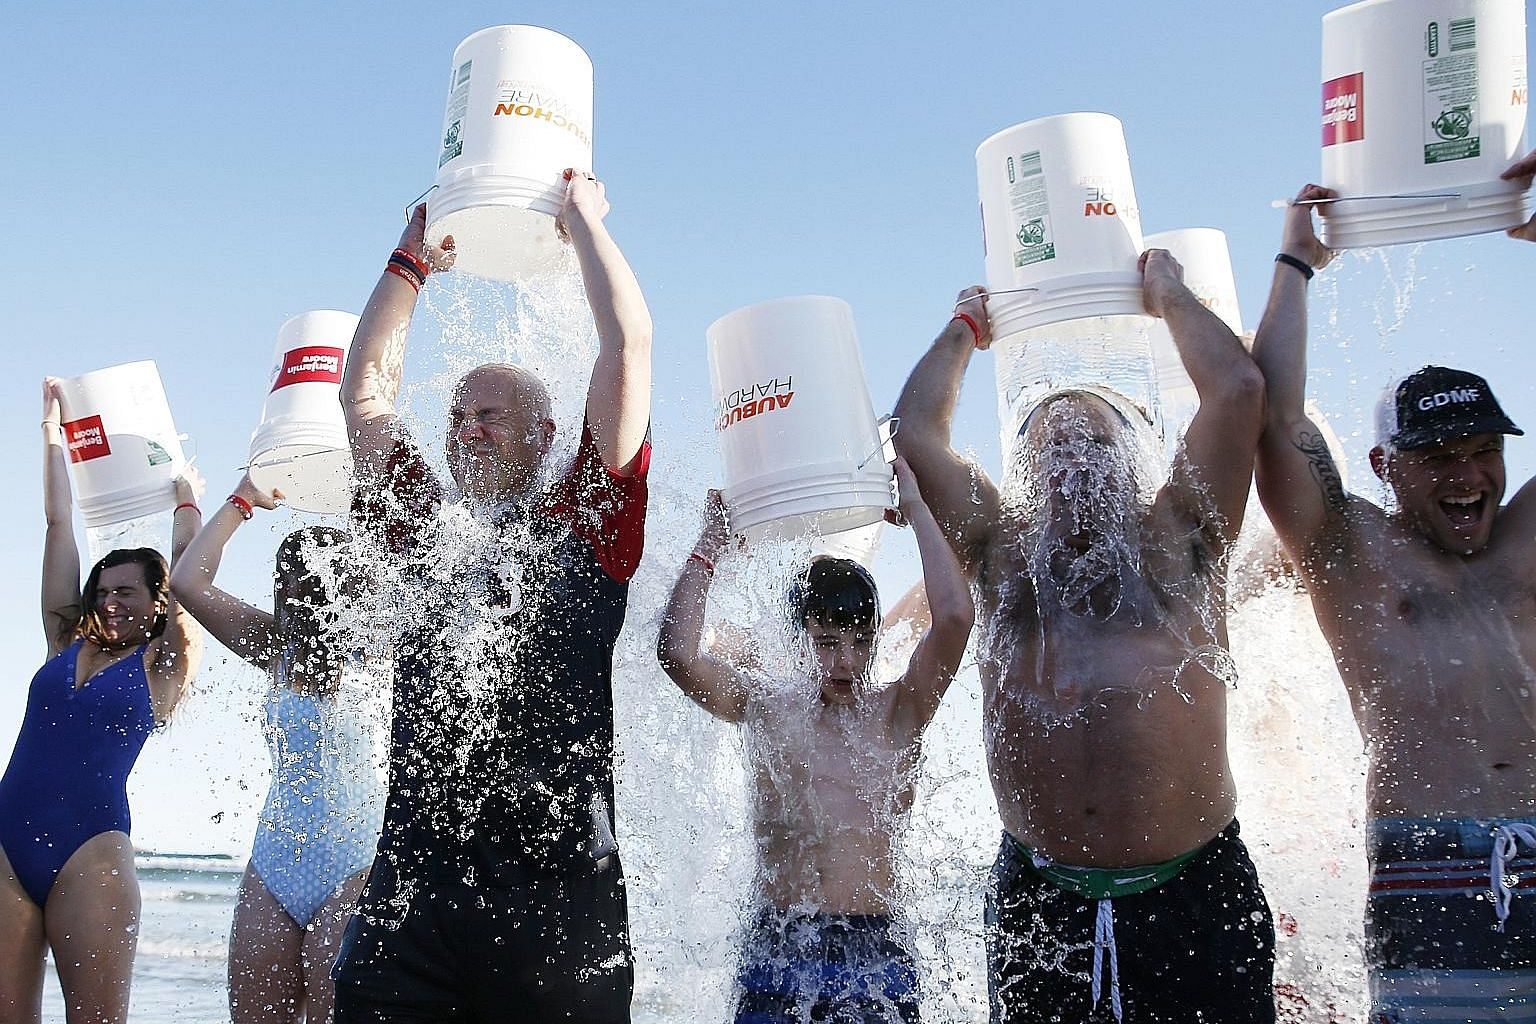 """About 1,000 people showed up for the final """"Plunge for Pete"""" at Good Harbour in Gloucester, Massachusetts, last Saturday. More than half of those braved the frigid waters on what would have been the late Mr Peter Frates' 35th birthday."""